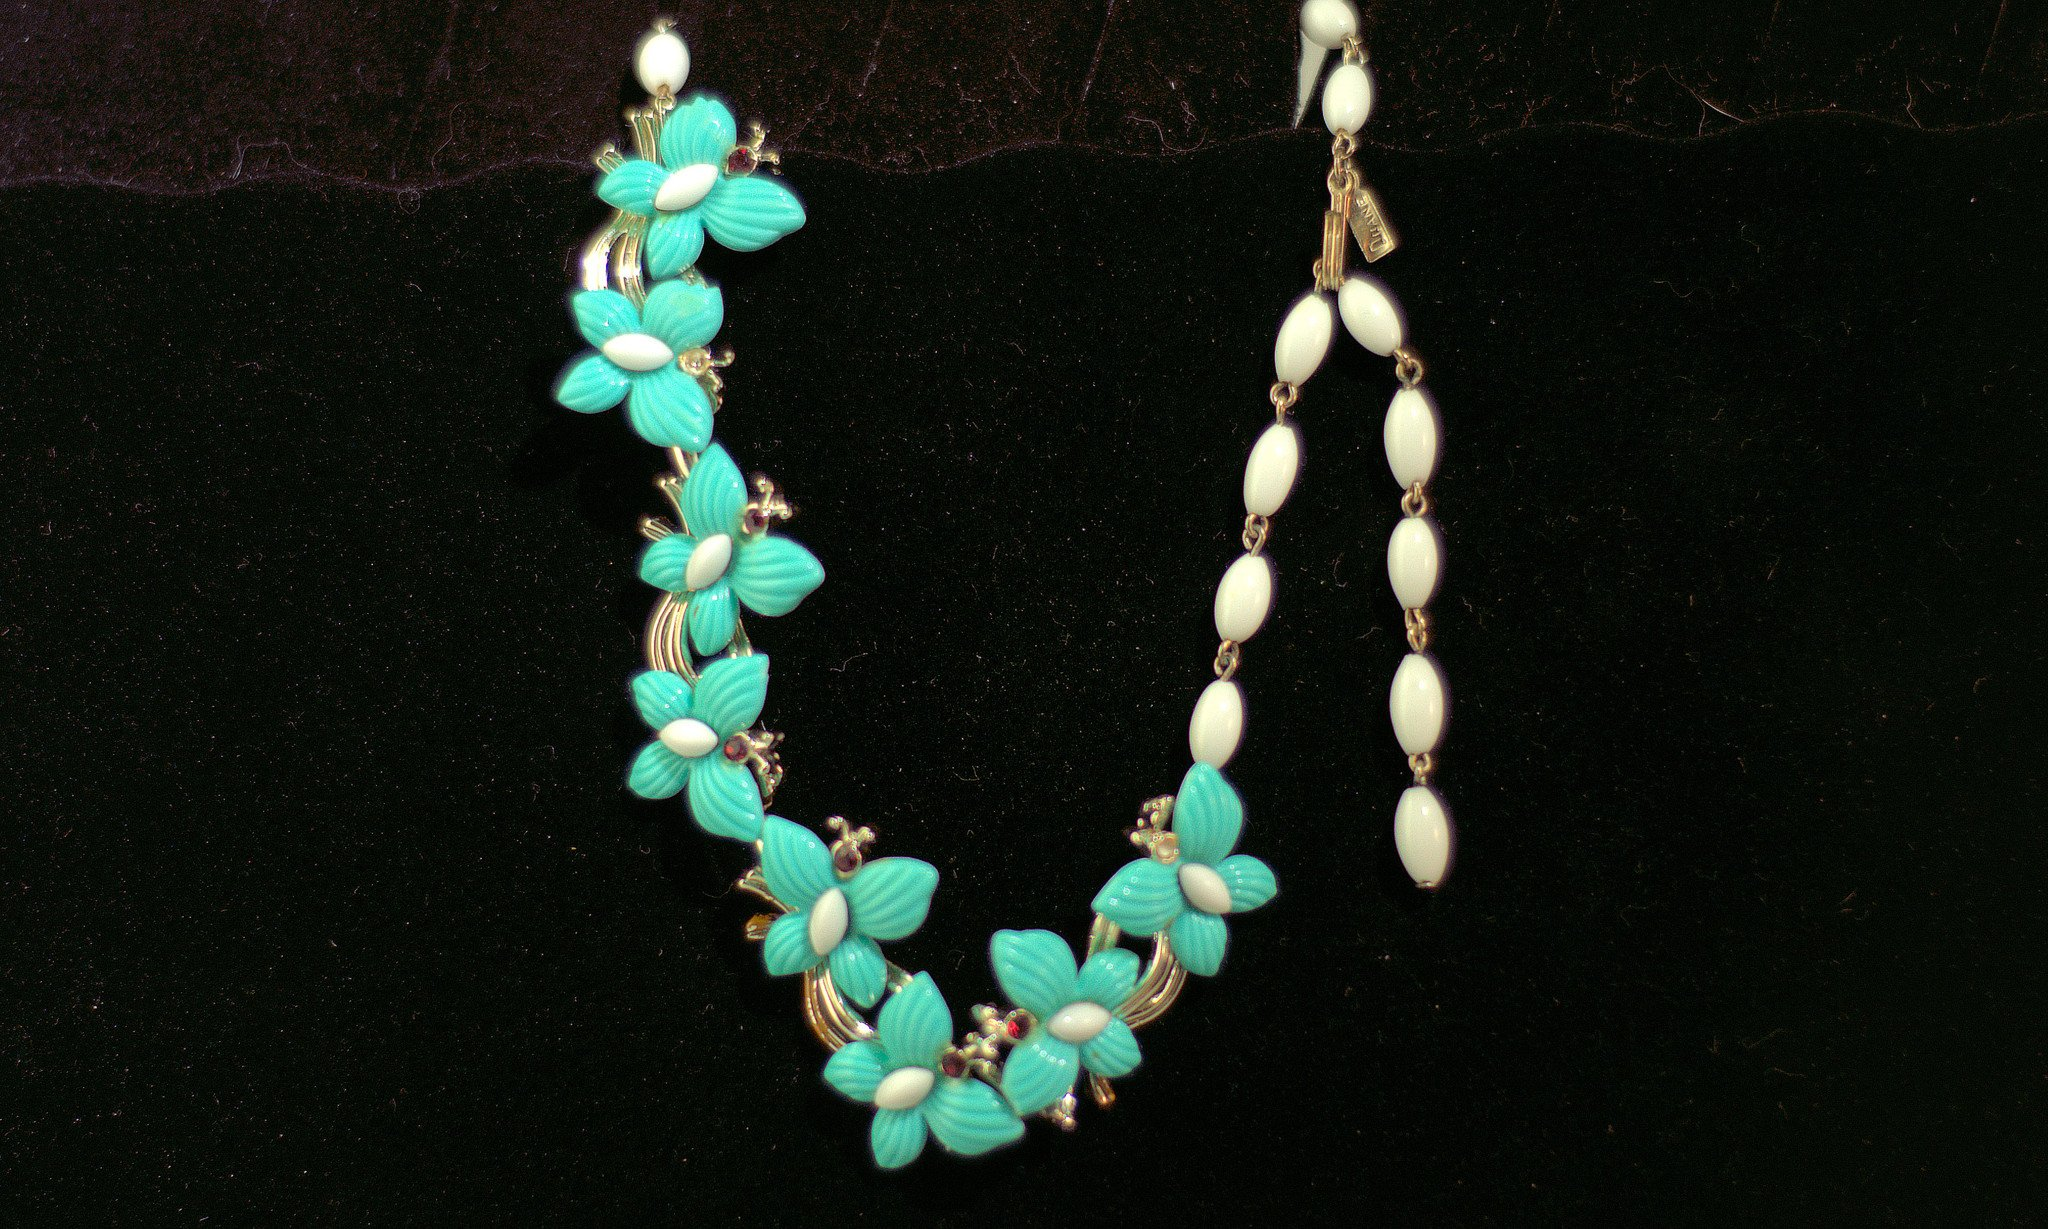 Vintage 1950s Teal Butterfly Necklace with Faux Ruby Eyes #vintagenecklace #vintage #1950style #necklace